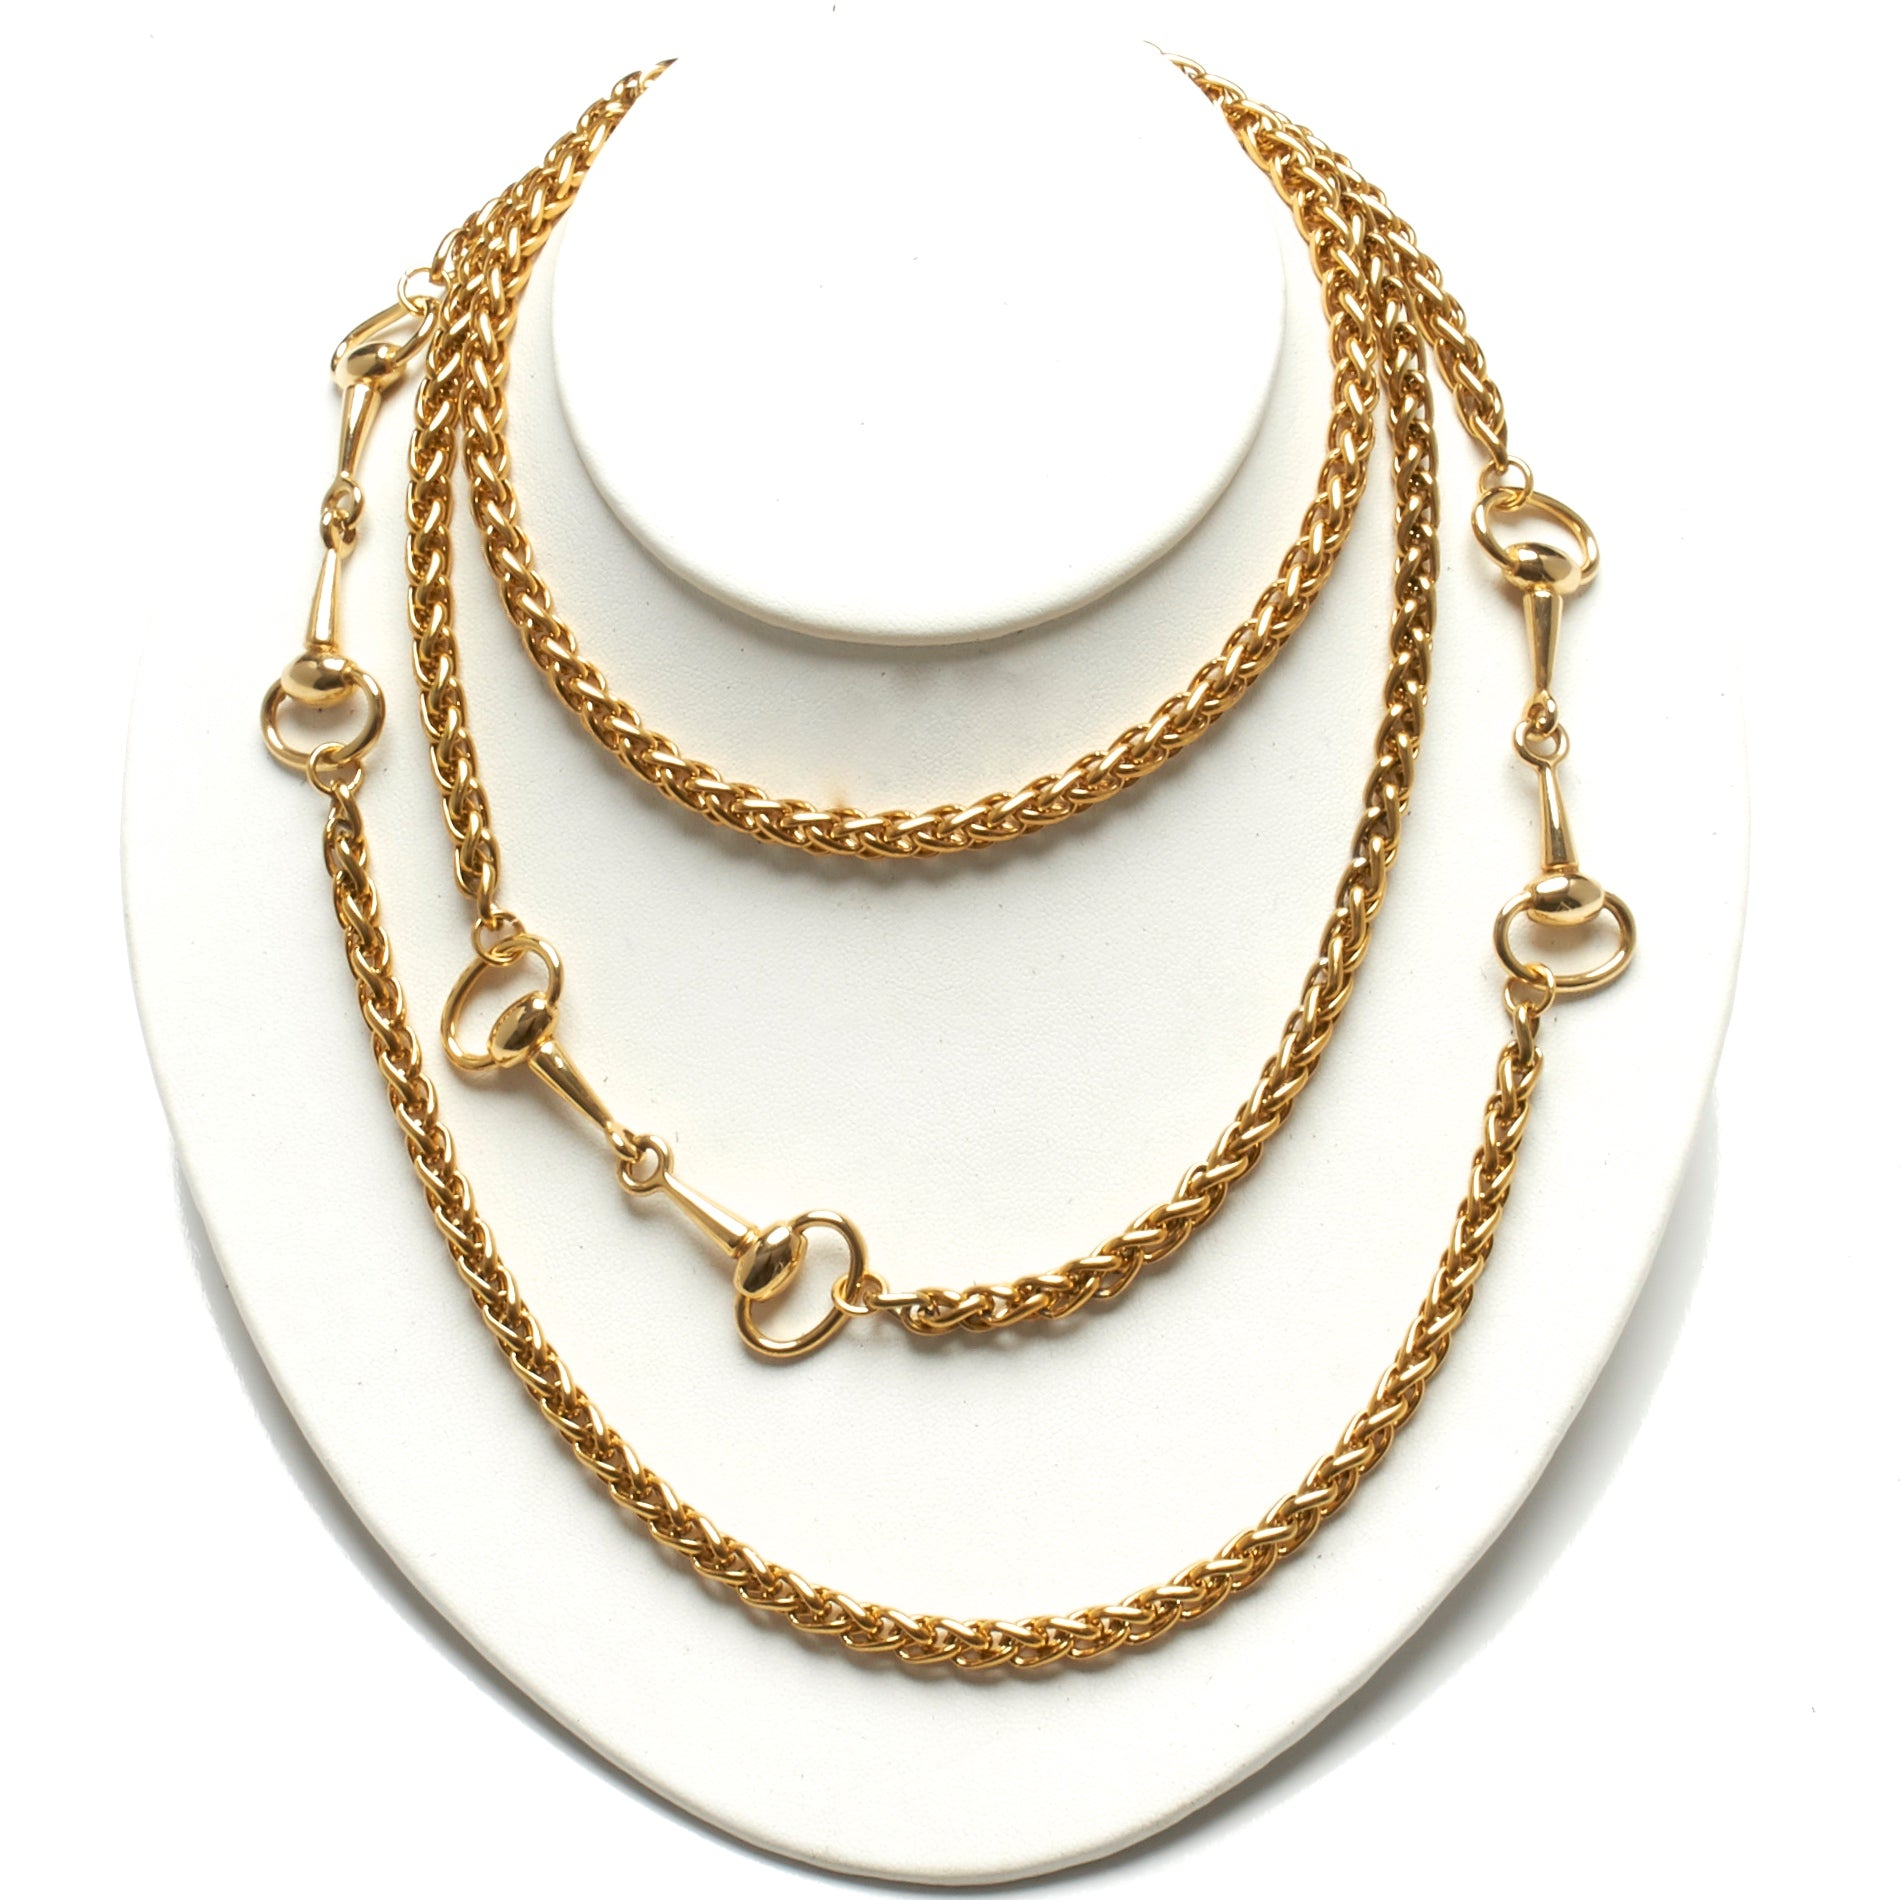 LONG GOLD PLATE OVER STAINLESS STEEL NECKLACE ADORNED WITH THREE SOLID BRASS HORSE-BIT ACCENT HARDWARE. by NYET Jewelry.